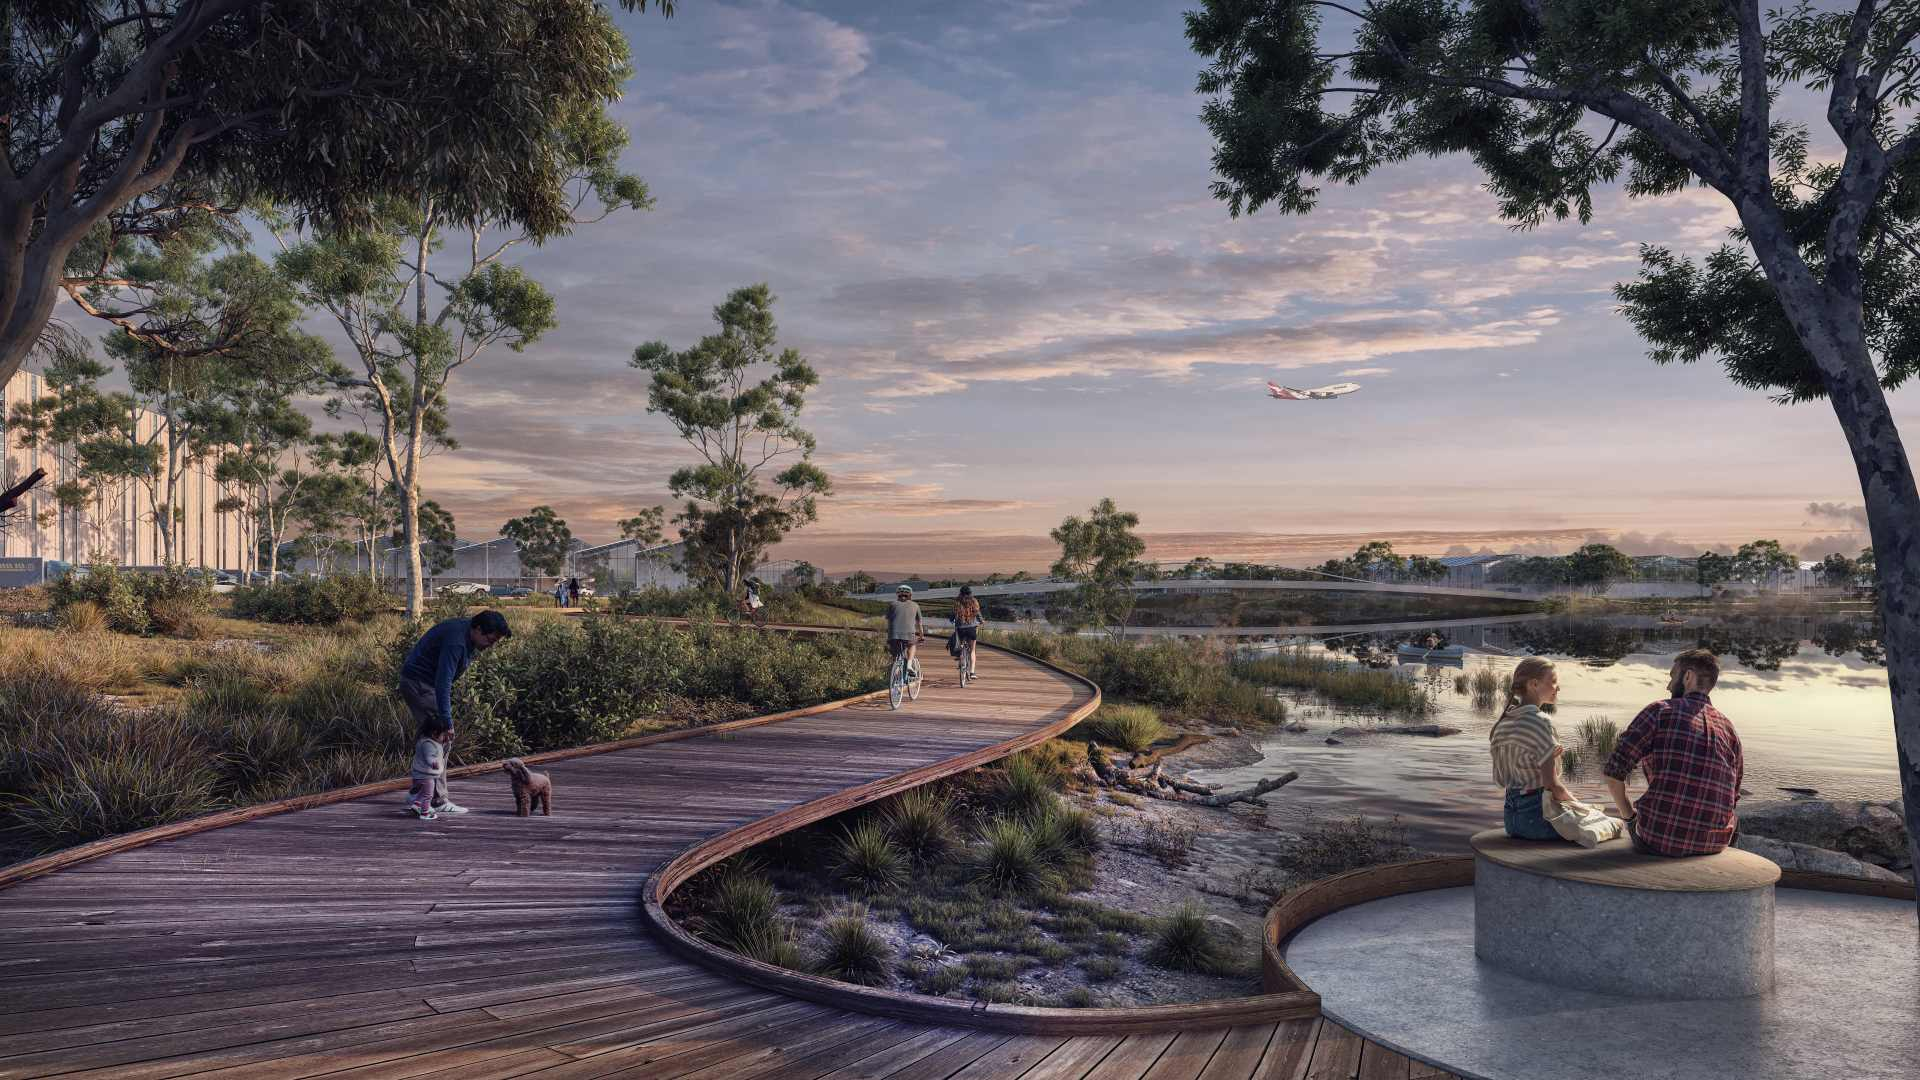 Sydney's New City Around the Western Airport Will Be Named After Engineer John Bradfield